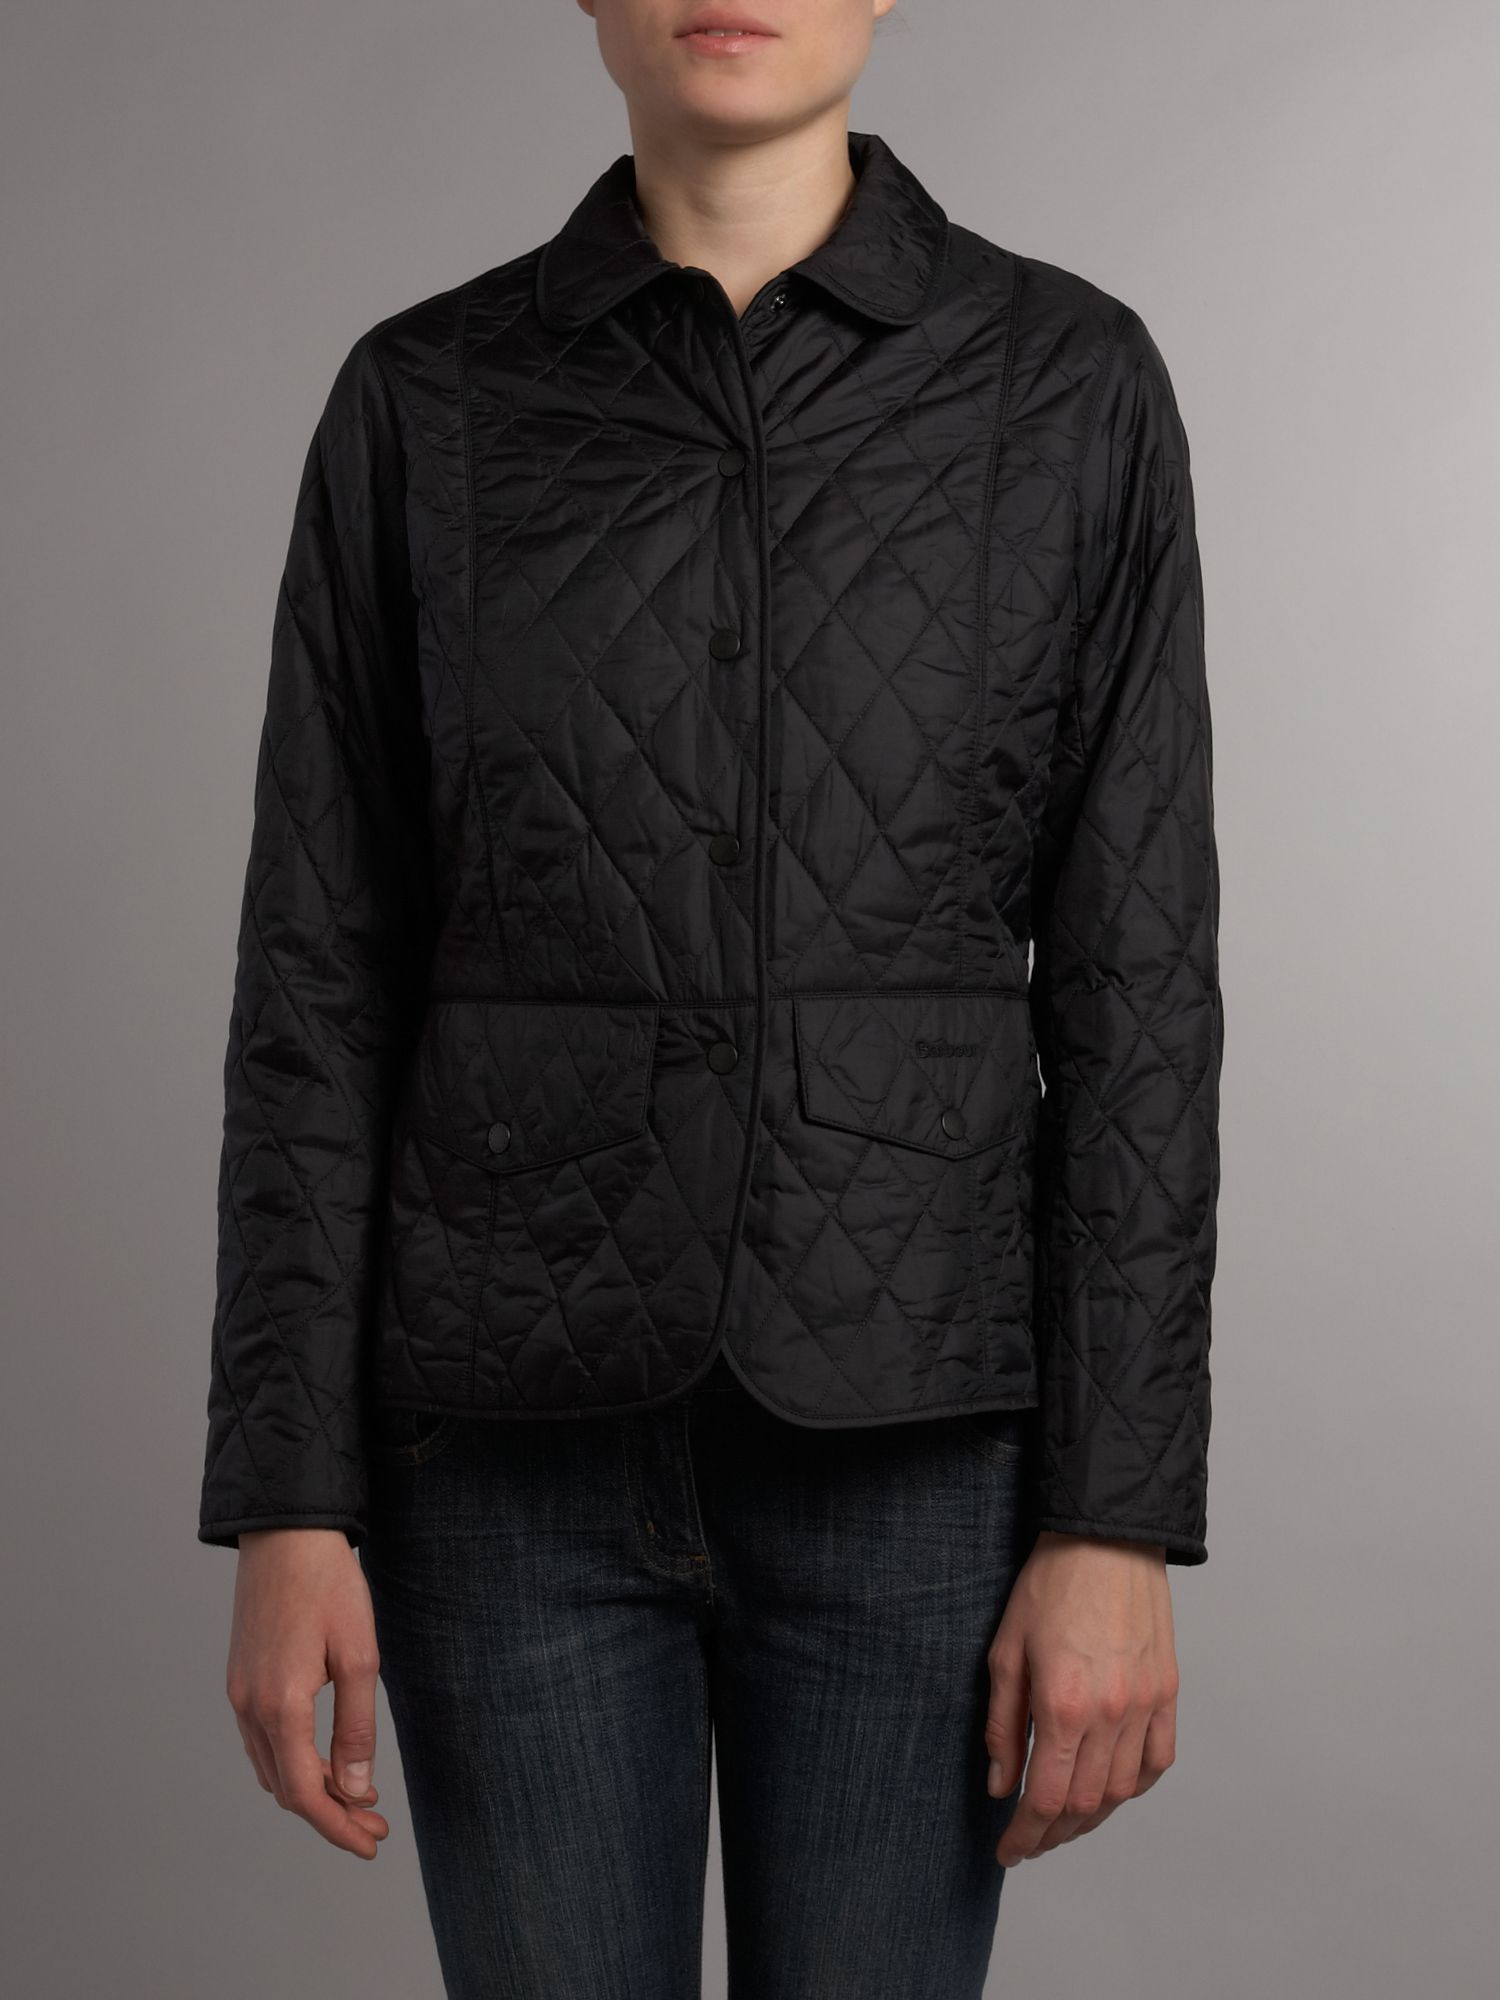 Tailor quilted jacket